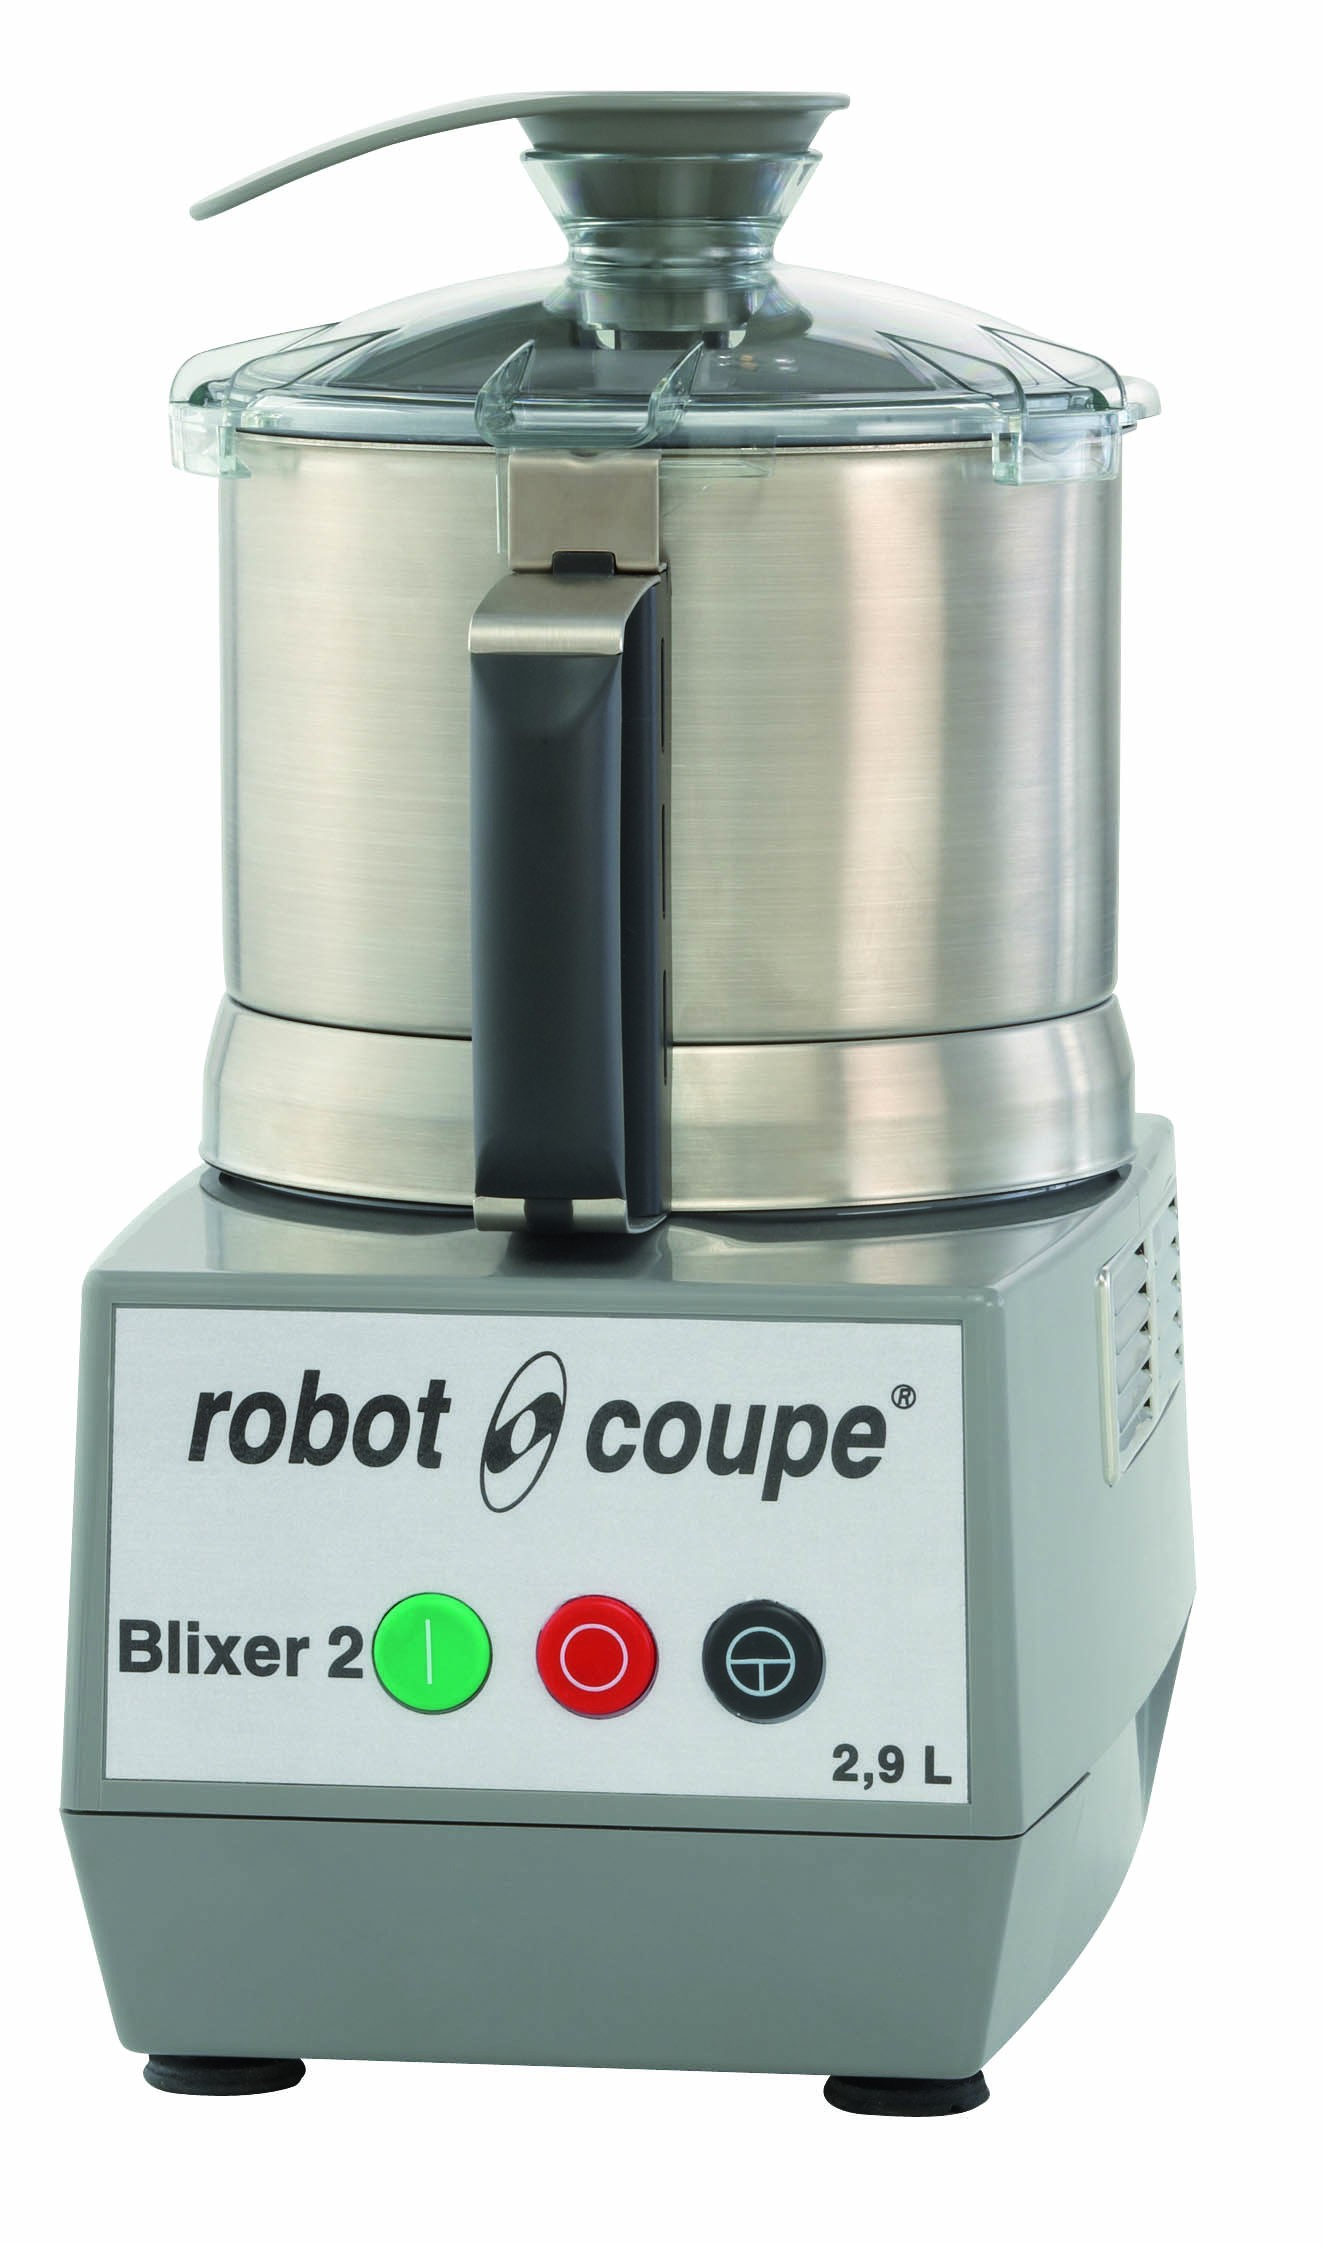 Image of Robot Coupe BLIXER 2 Food Processor